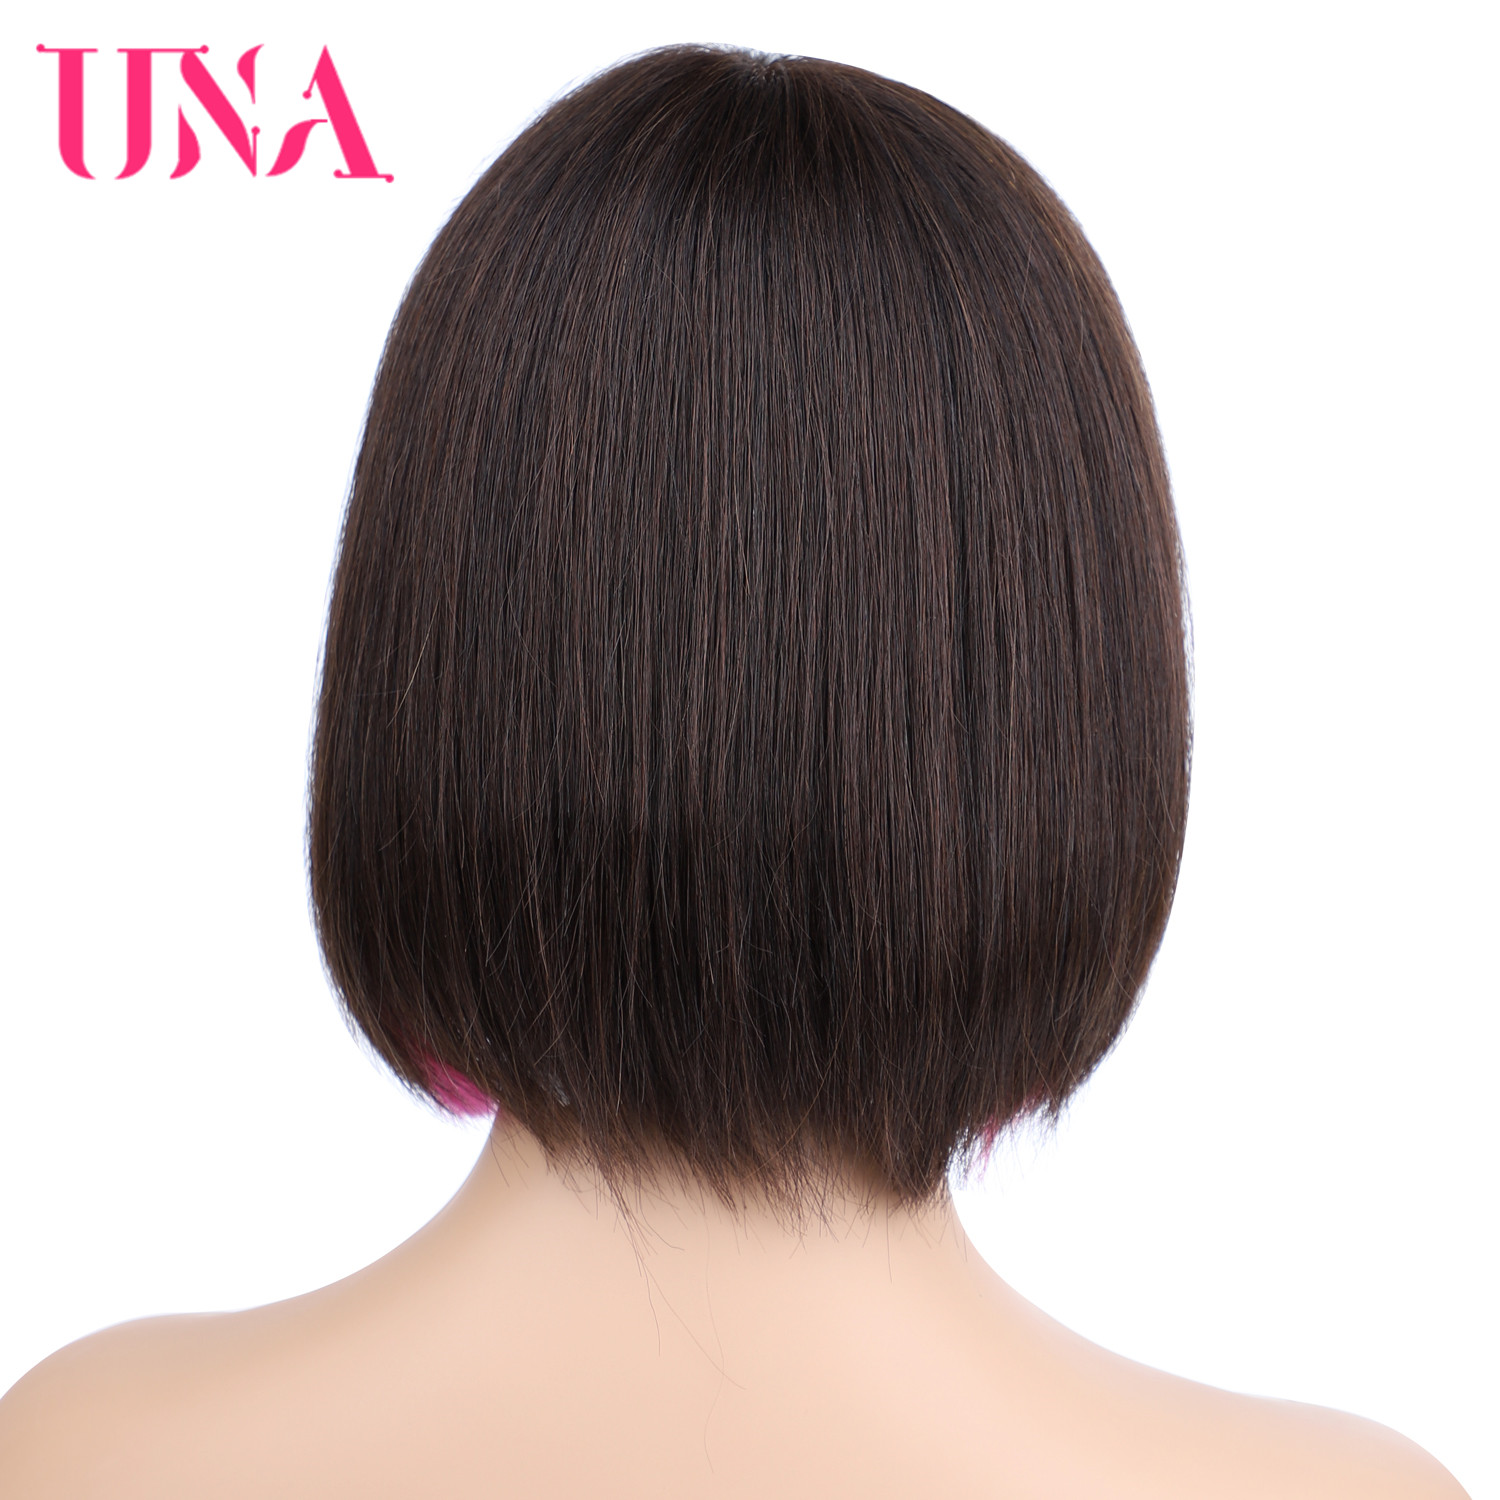 Brazilian Human Hair Wigs Non Remy Hair BOBO Wigs Straight Machine Human Wigs with MOMO Web 10 Inches Long 12 Colors Avalable in Full Machine Wigs from Hair Extensions Wigs